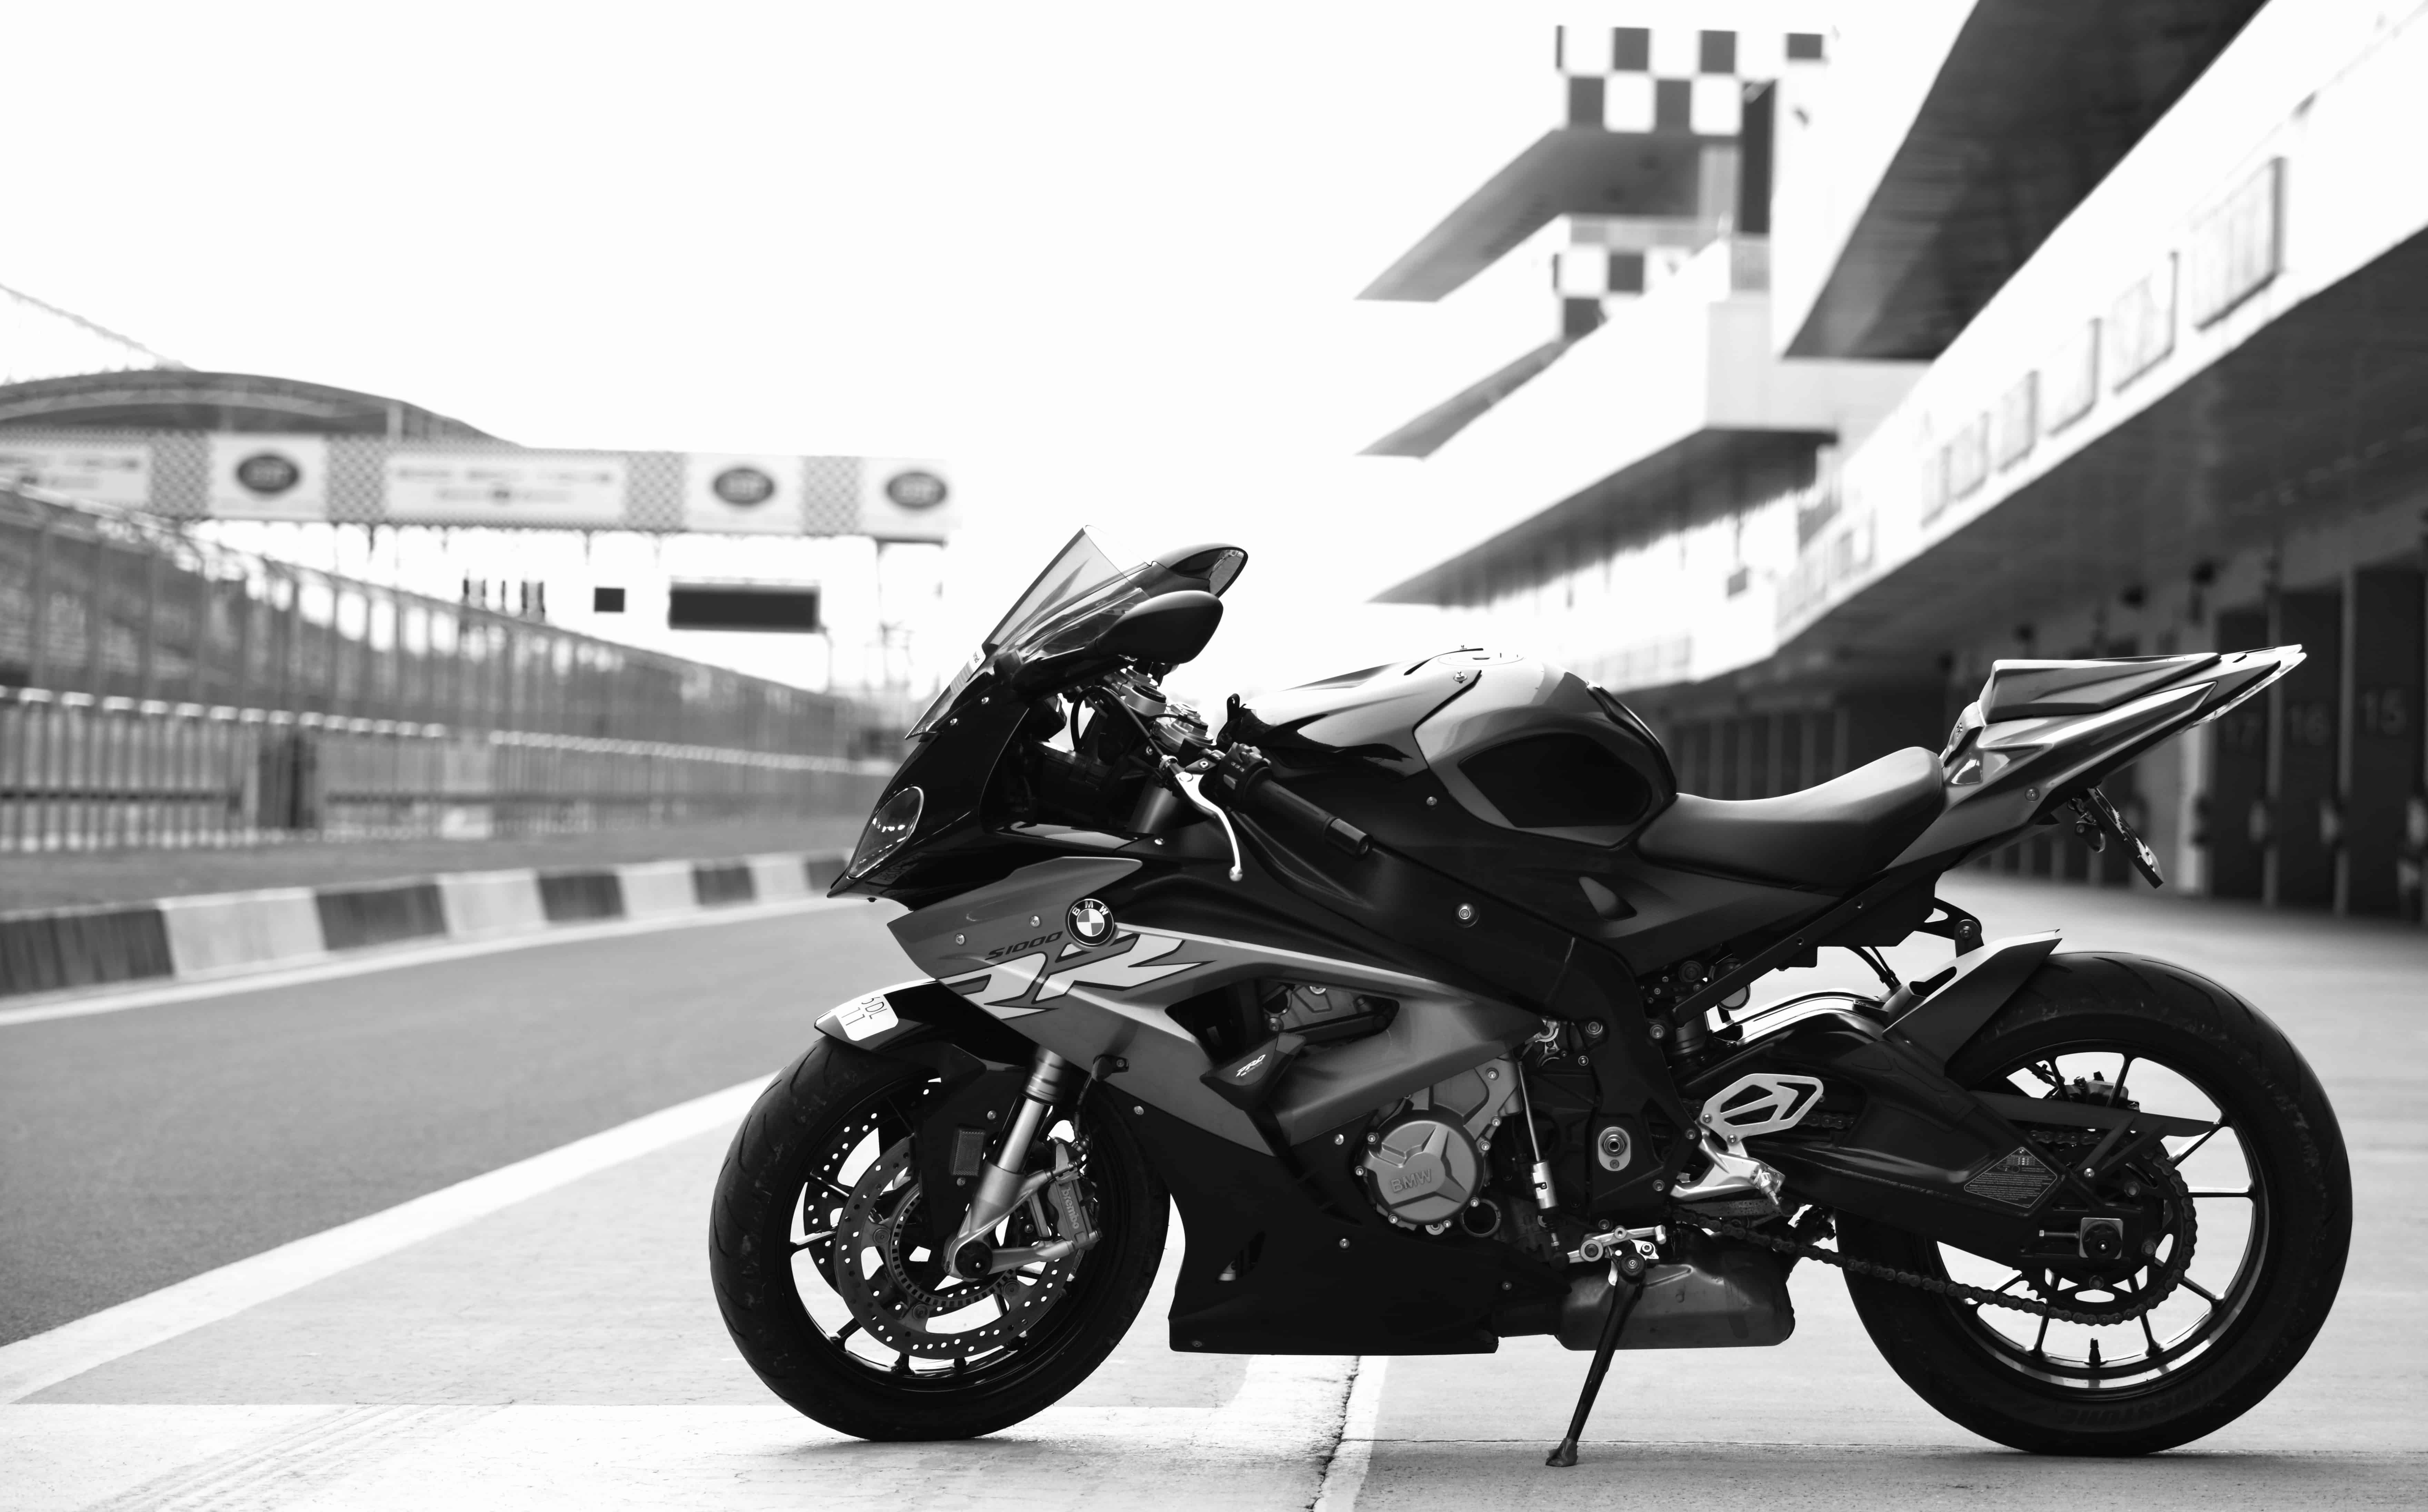 BMW S 1000 rr photography